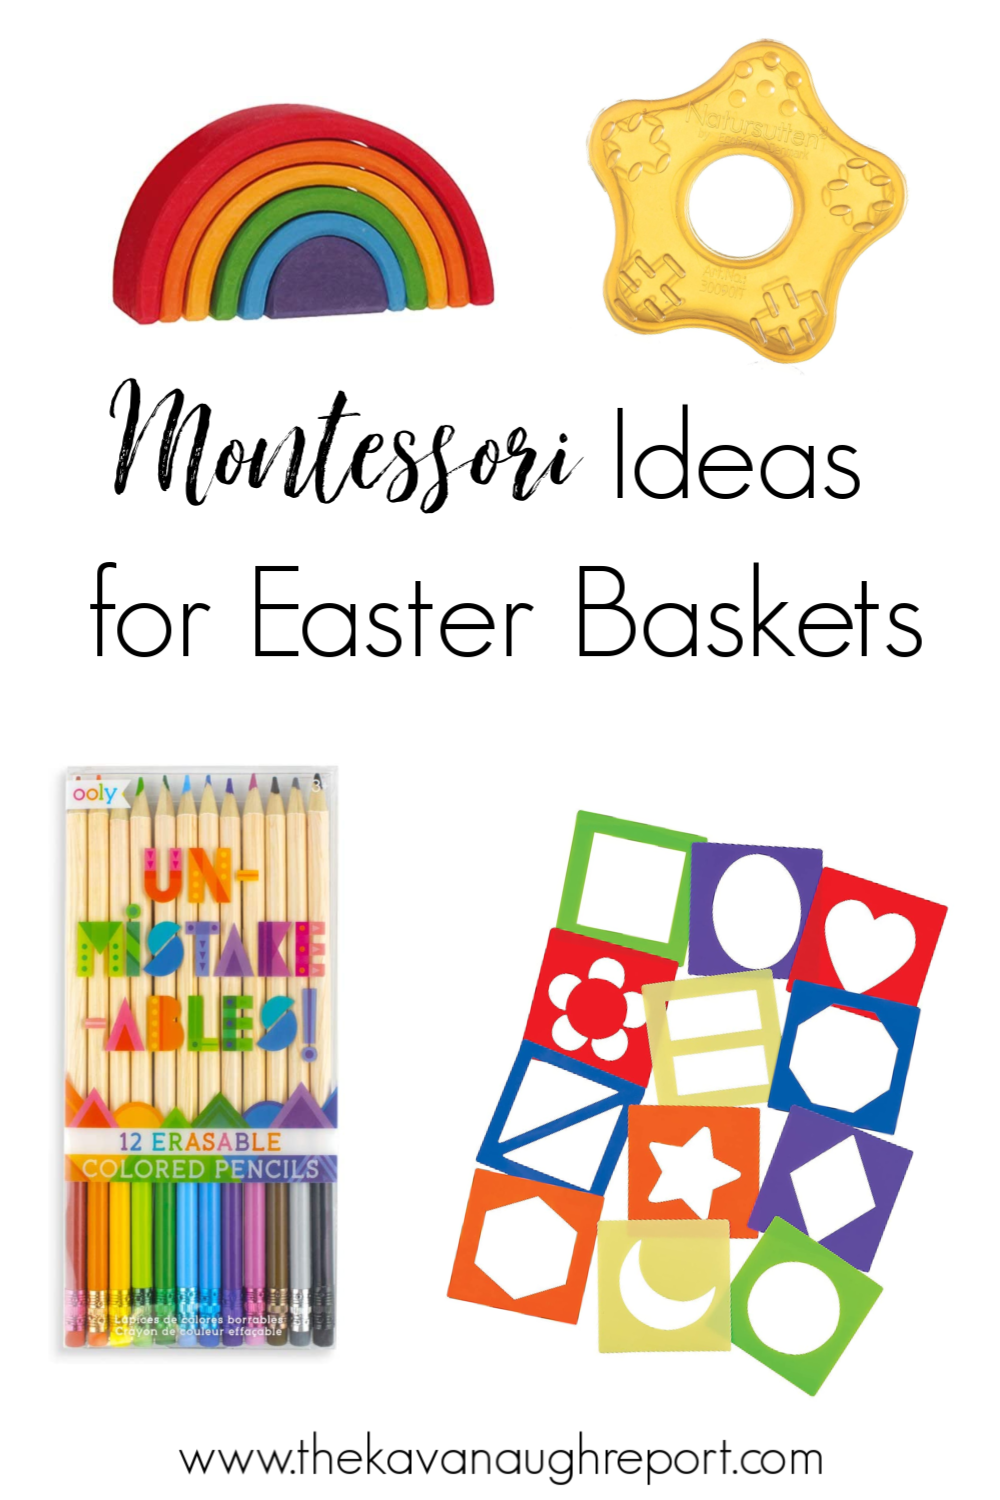 Here are some Montessori ideas and activities for Easter baskets. This post contains ideas for babies, toddlers, and bigger kids.